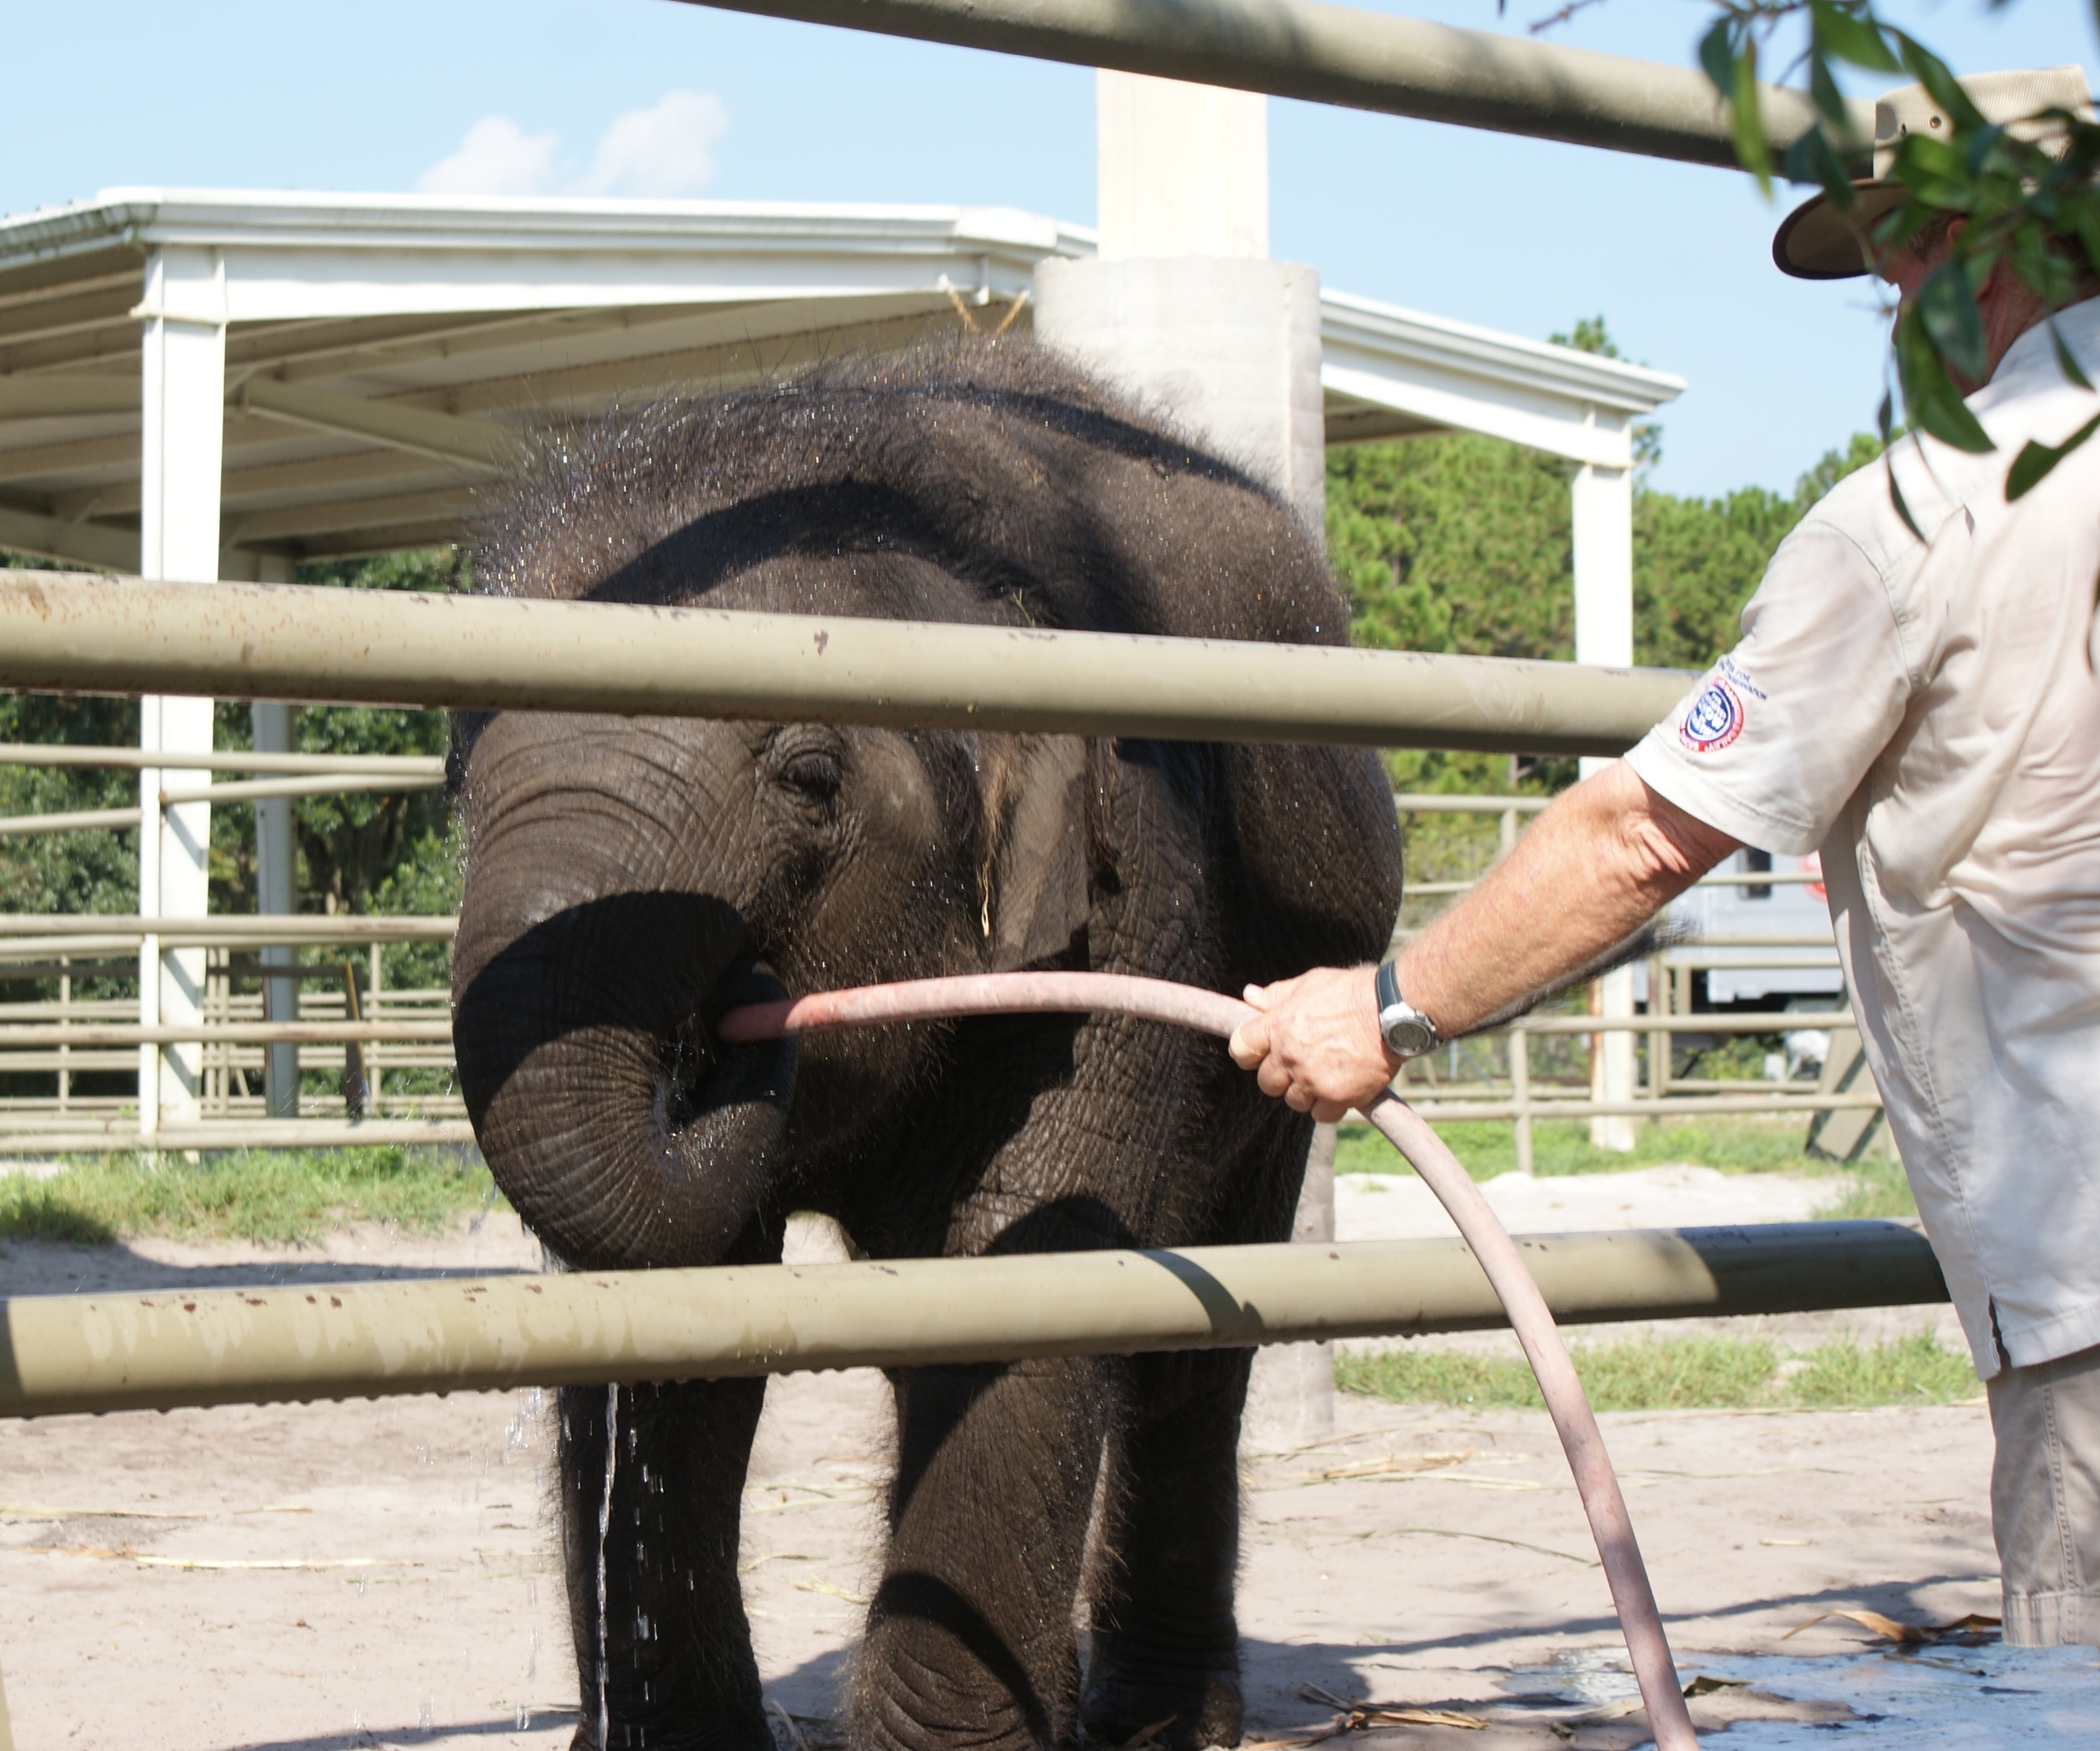 Elephant Conservation Ctr Aug 2014 015.JPG